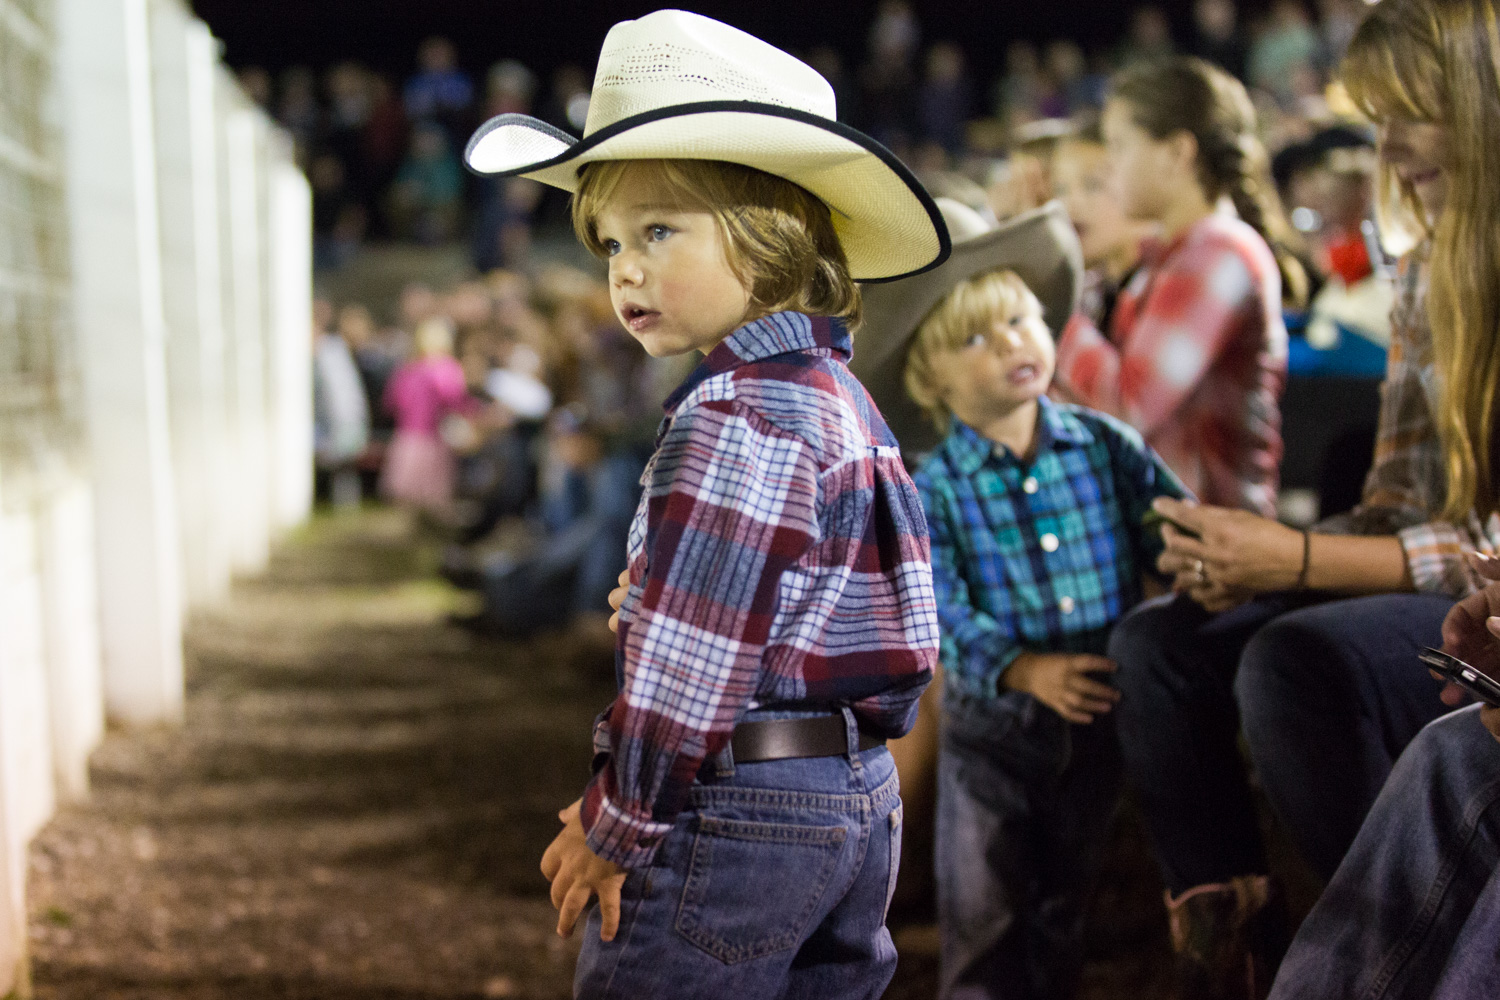 fans at the rodeo